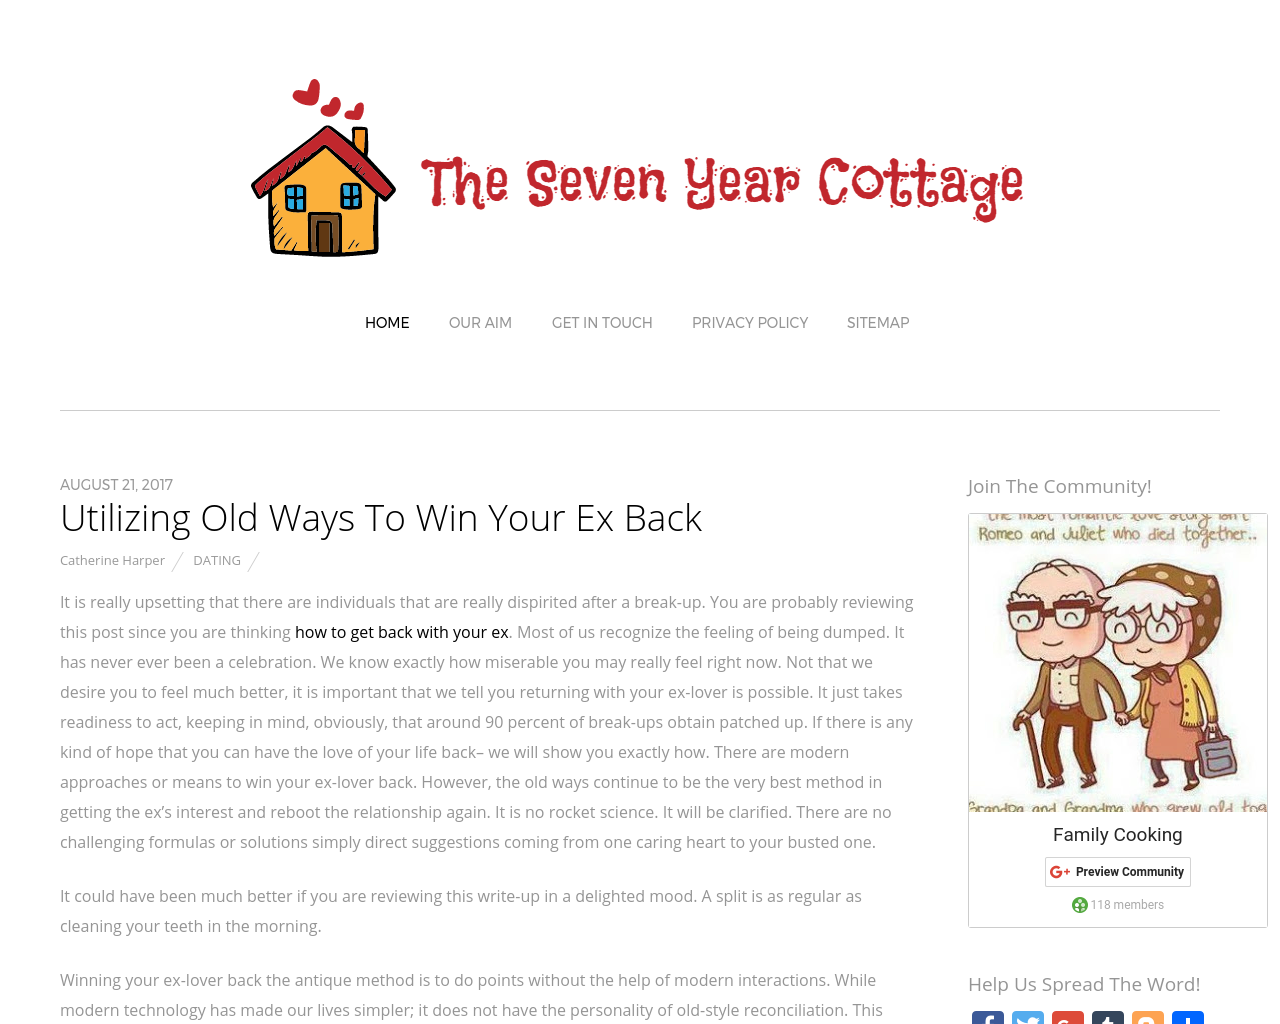 The-Seven-Year-Cottage-Advertising-Reviews-Pricing